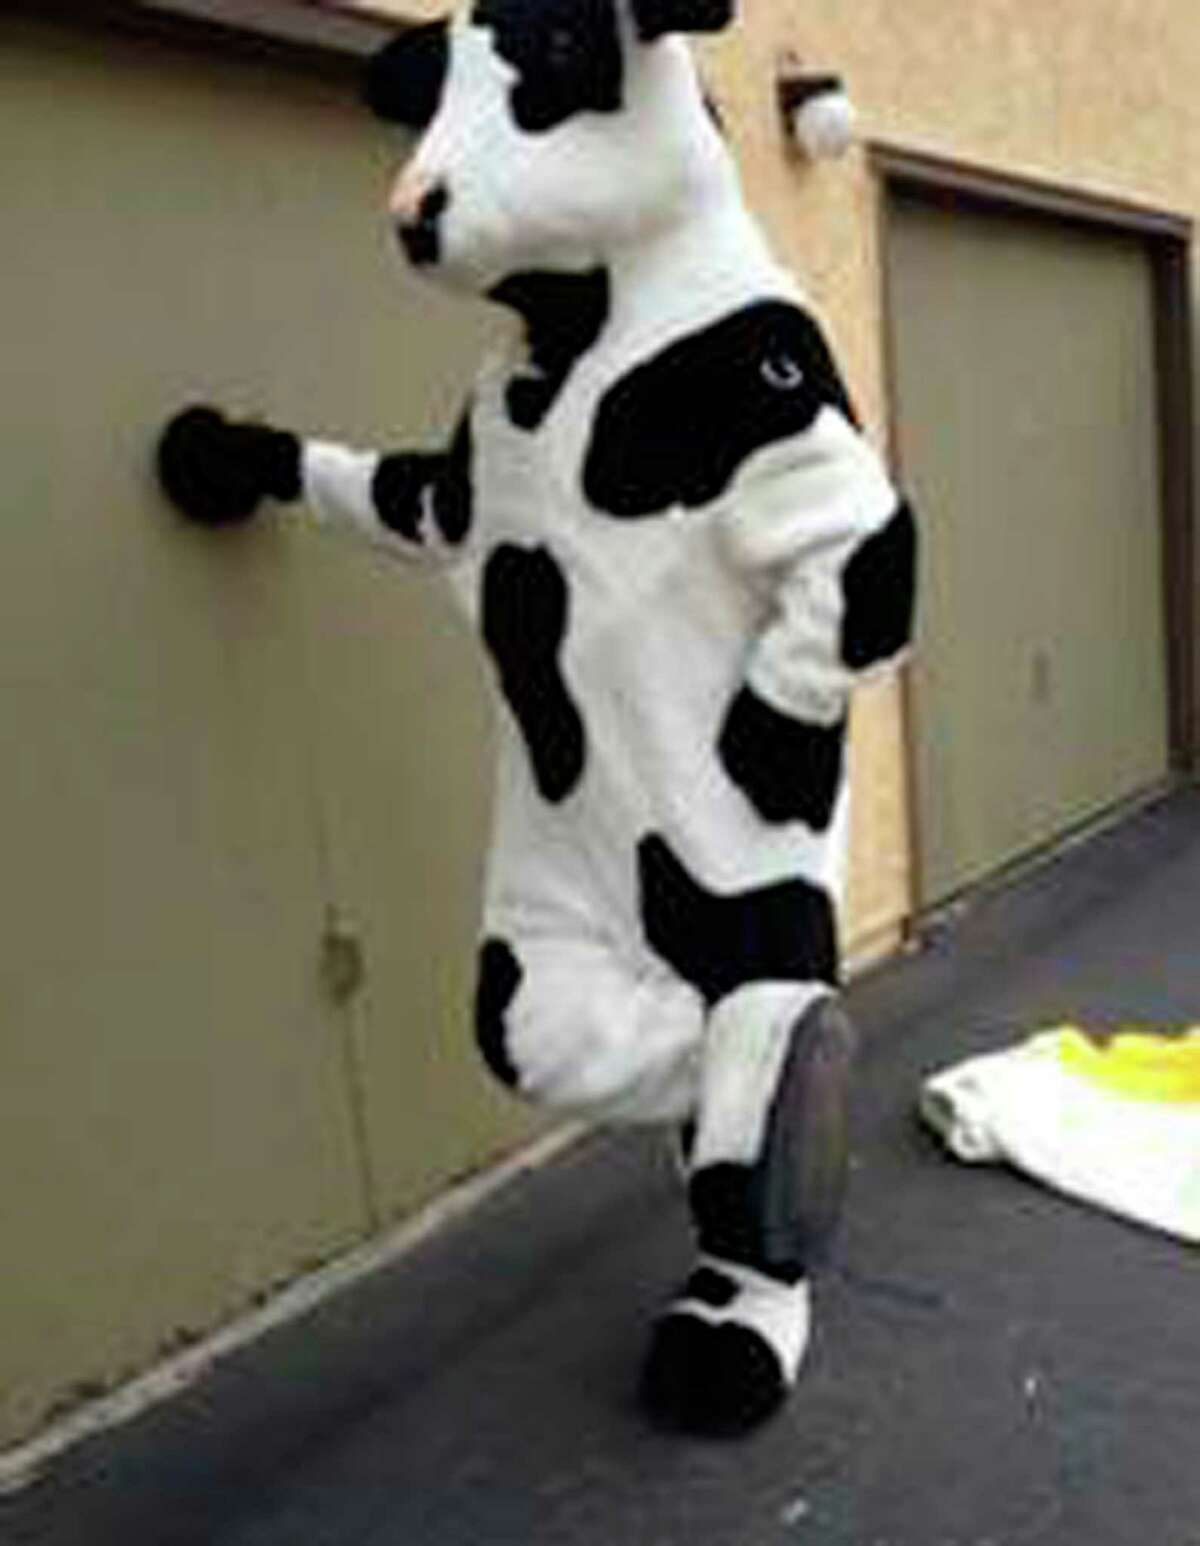 This undated photo released by the Redlands, Calif., Police Department, shows an unknown person posing in a stolen cow costume in San Bernardino, Calif., for an ad that was seen by police on Craigslist. Redlands police said two 7-foot cow costumes created for the Chick-fil-A chain were nabbed in separate restaurant burglaries, turned up for sale for $350 apiece on Craigslist in late October. An undercover officer arranged to buy the bovine attire in time for Halloween, and when the seller produced the black-and-white outfits he was arrested on Oct. 30, 2013. Robert Michael Trytten, 43, of Riverside, is being held on suspicion of possession of the stolen property on $275,000 bail.